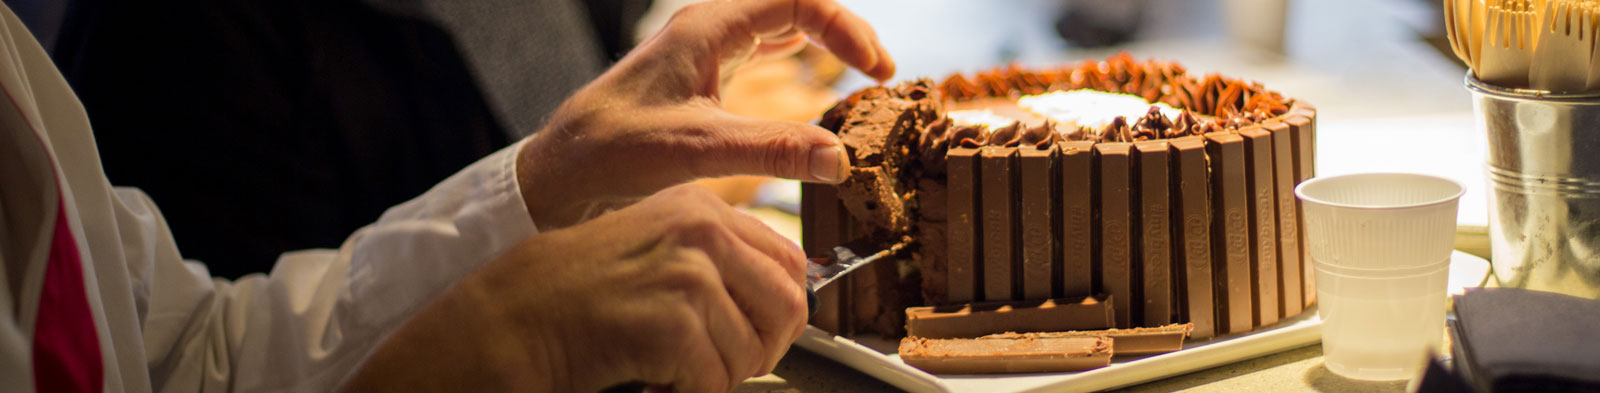 Obscured party guests cut a lice of decadent chocolate cake.